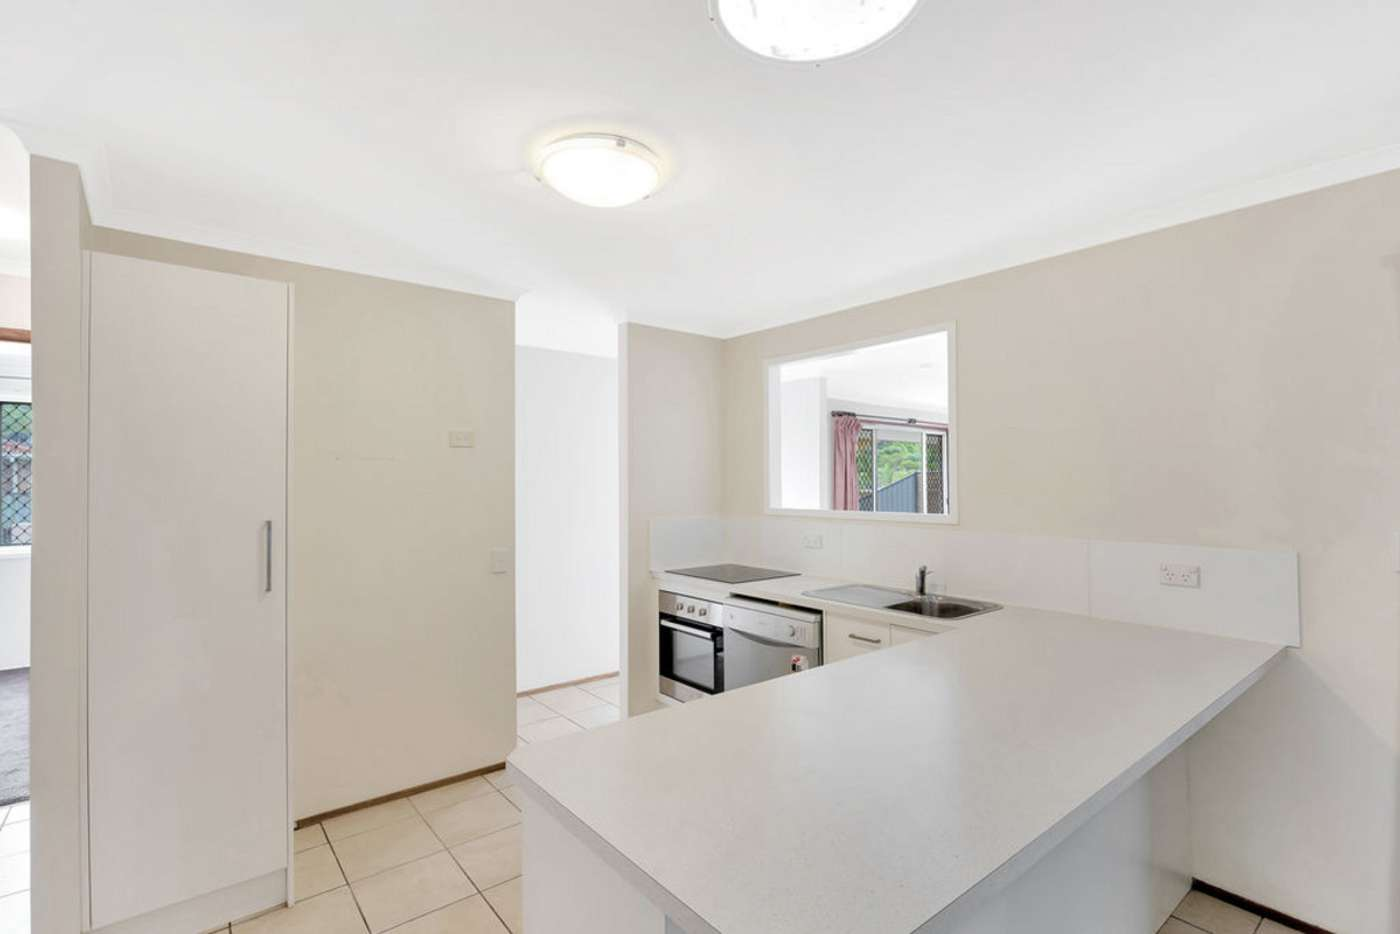 Sixth view of Homely house listing, 11 Kenneth Drive, Highland Park QLD 4211